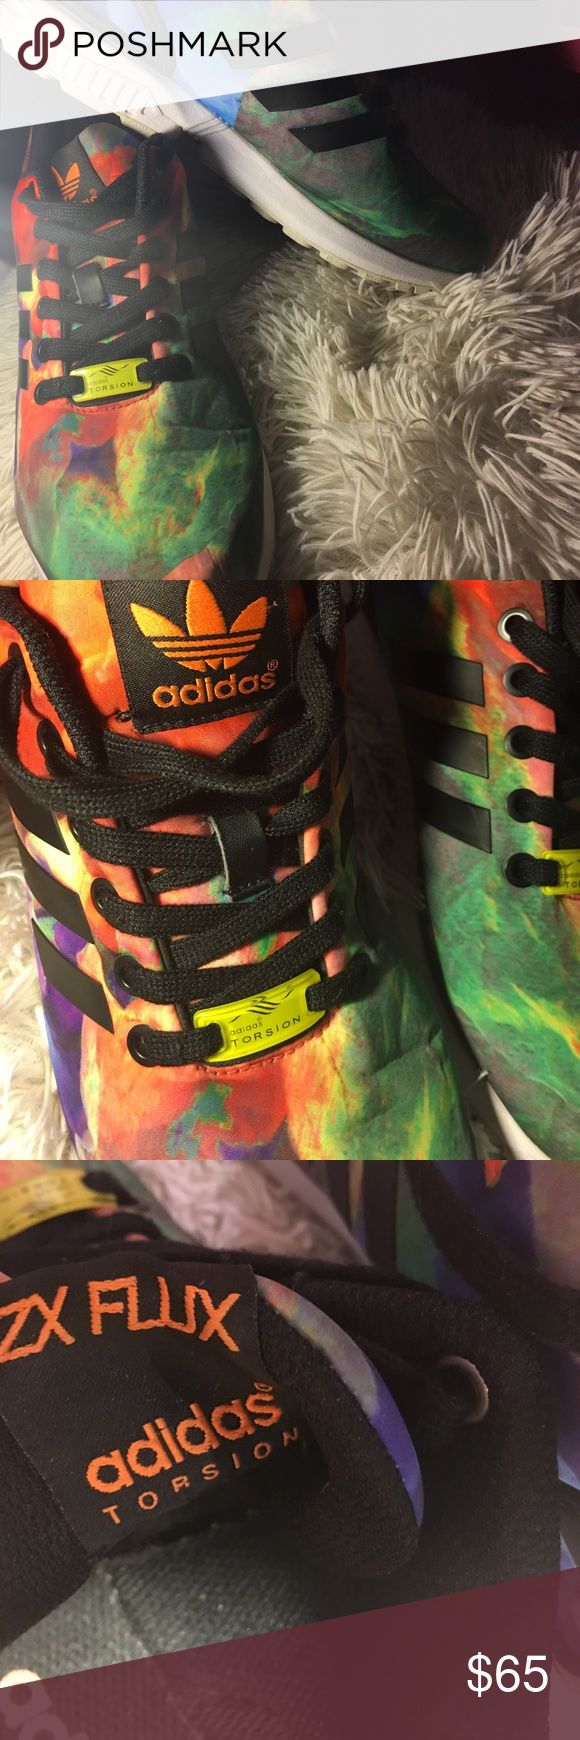 Adidas ZX FLUX Multi-color Adidas ZX Flux , very cute and can go with almost anything! Barley wore them, so LIKE NEW! Adidas Shoes Sneakers